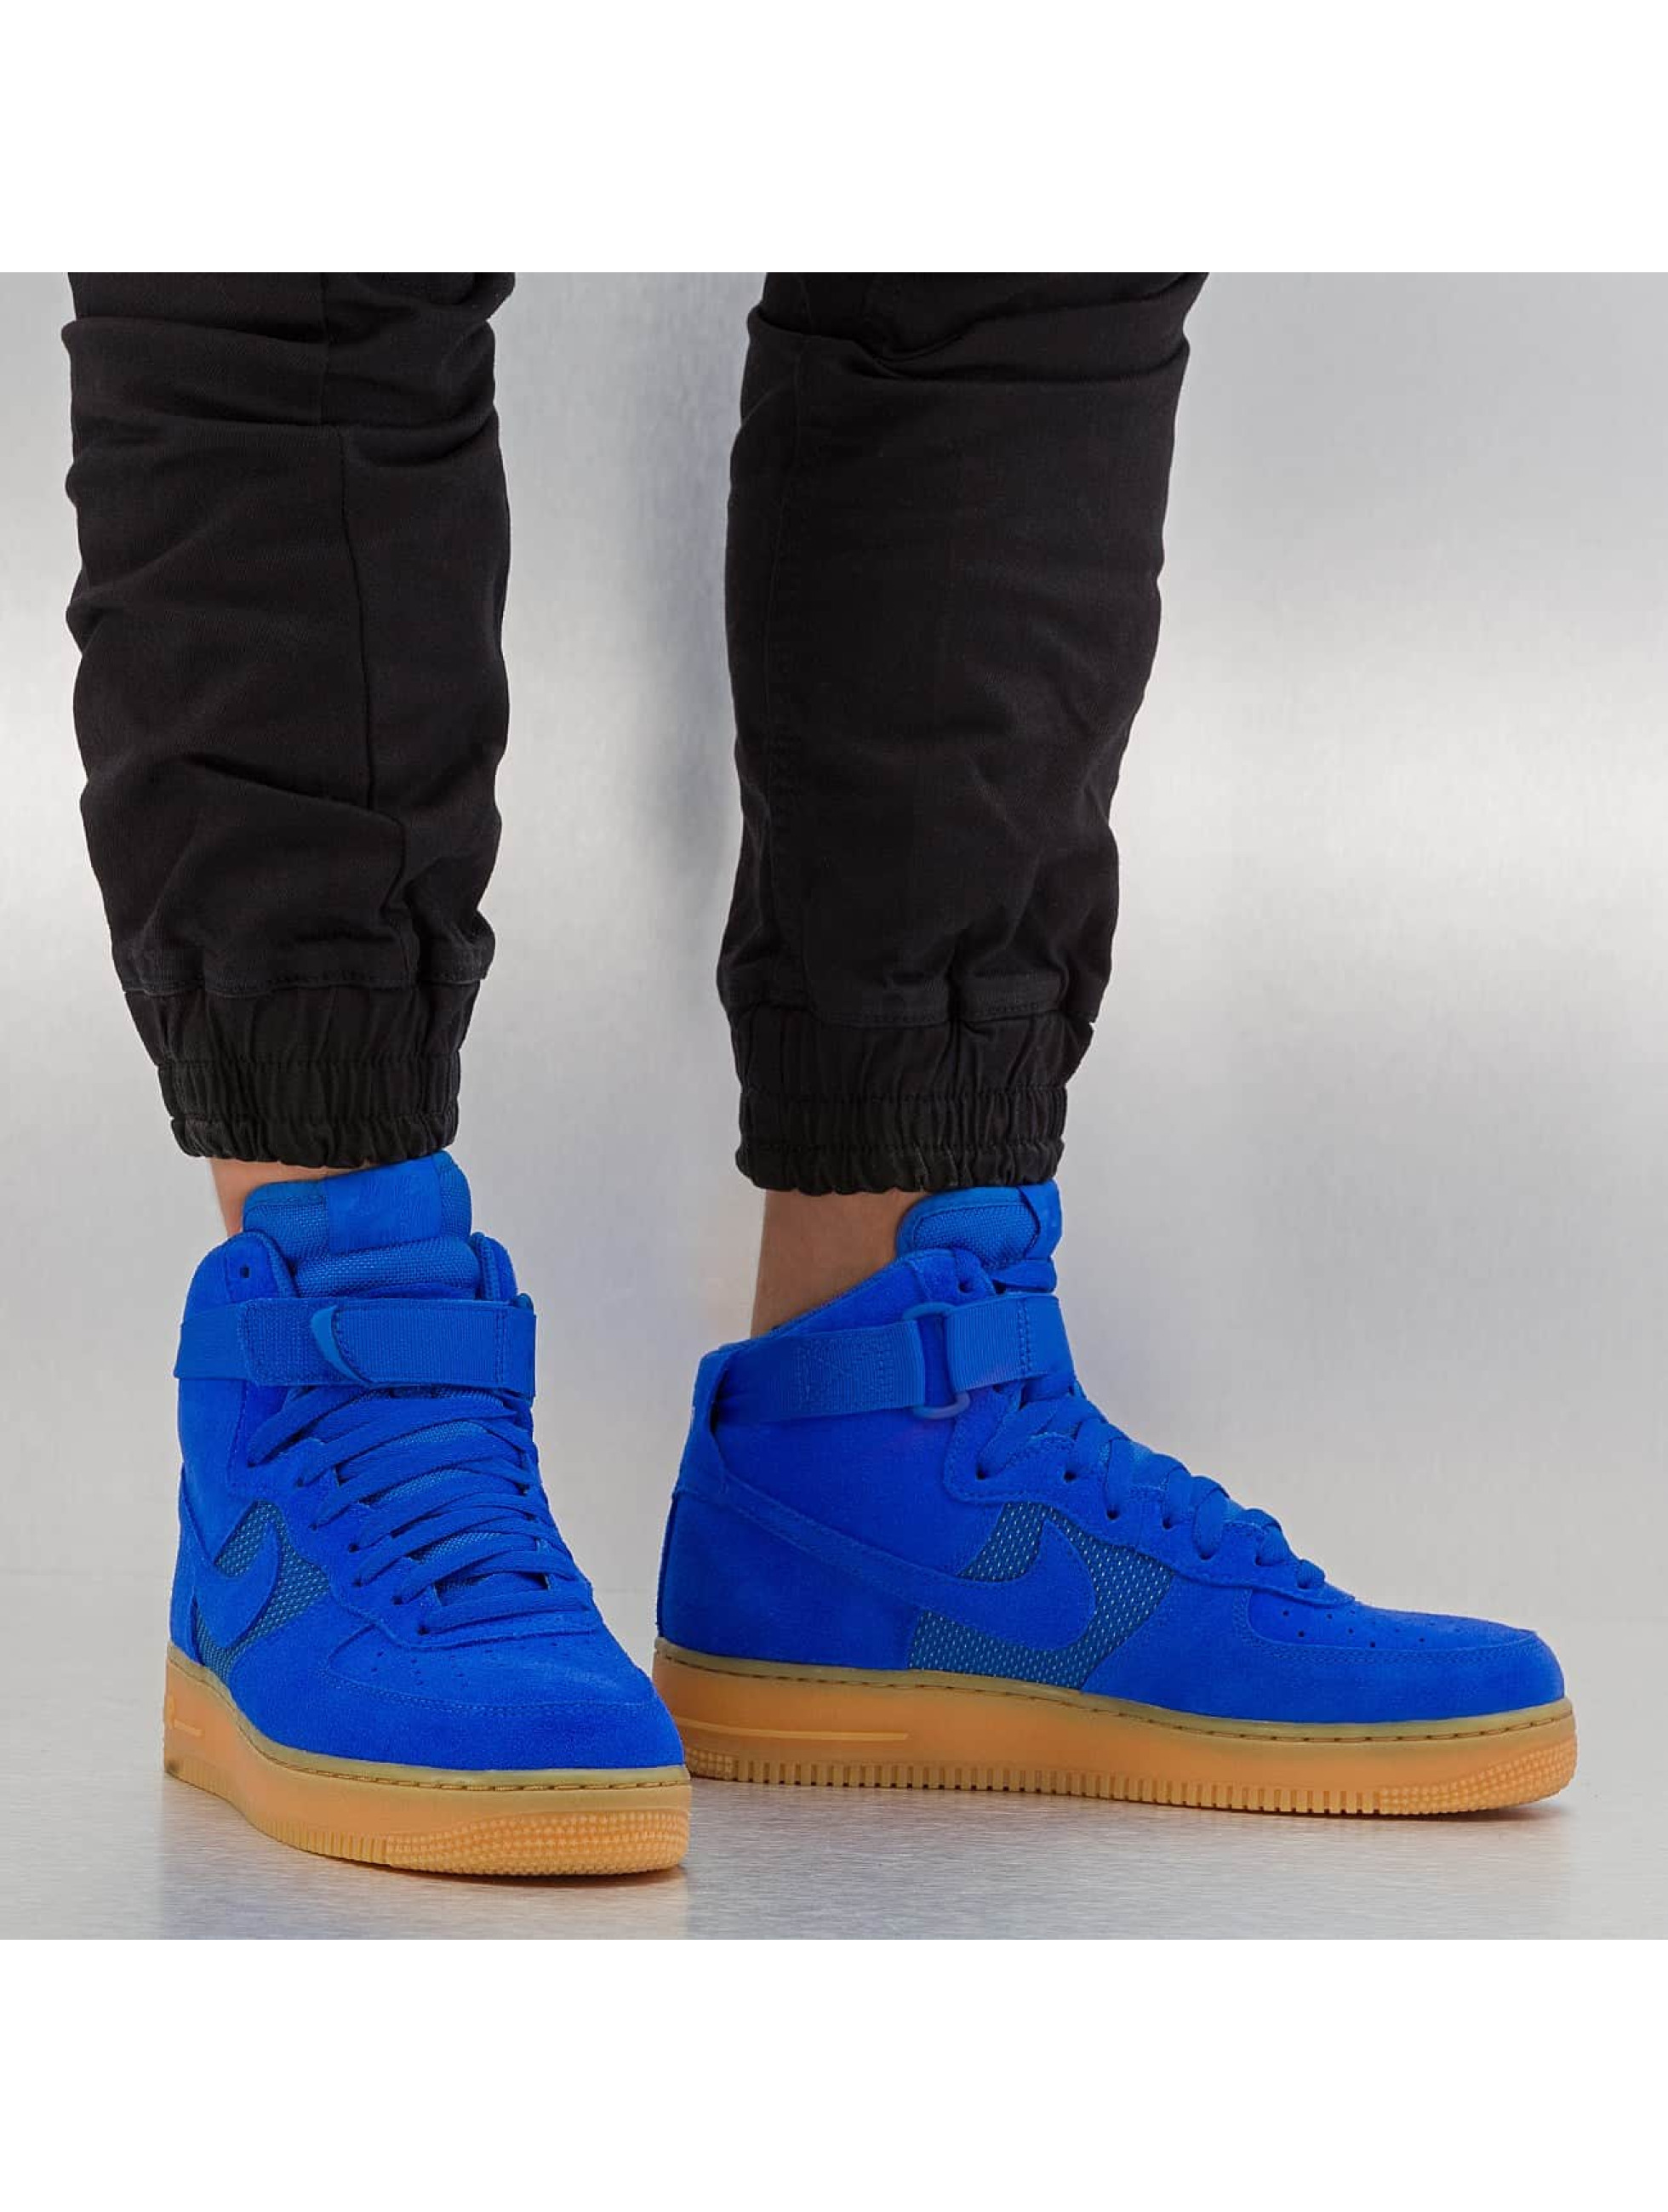 Sneaker Air Force 1 High 07 LV8 in blau